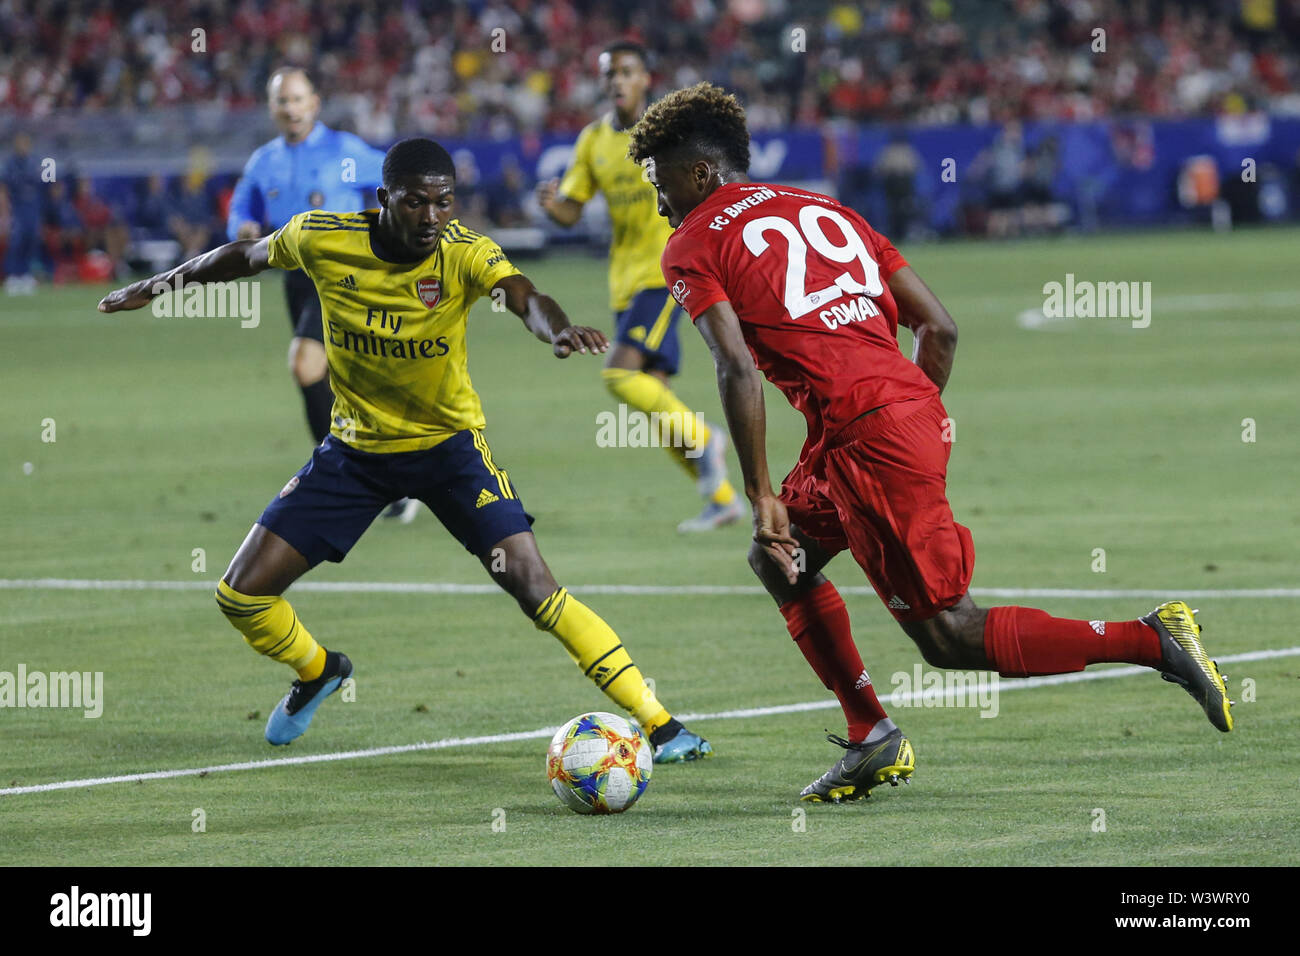 Los Angeles, California, USA. 17th July, 2019. Bayern Munich midfielder Kingsley Coman (29) drives the ball against Arsenal midfielder Ainsley Maitland-Niles (15) during the 2019 International Champions Cup (ICC) match between Arsenal and Bayern Munich in Carson, California, July 17, 2019. Arsenal won 2-1. Credit: Ringo Chiu/ZUMA Wire/Alamy Live News - Stock Image